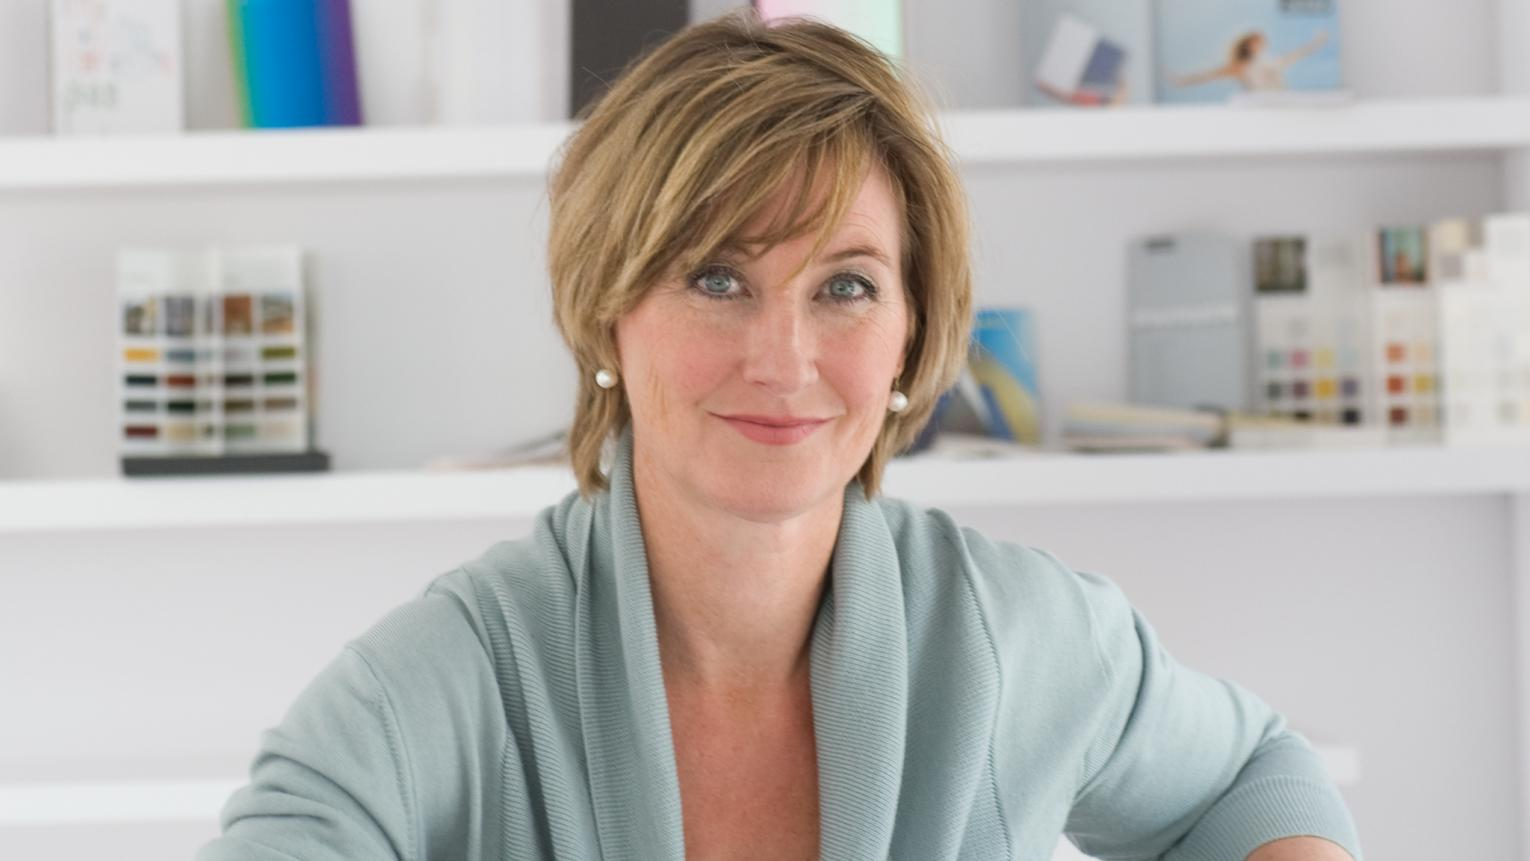 Heleen van Gent, one of the design experts who forecast the colour trends that influence how we decorate our homes.